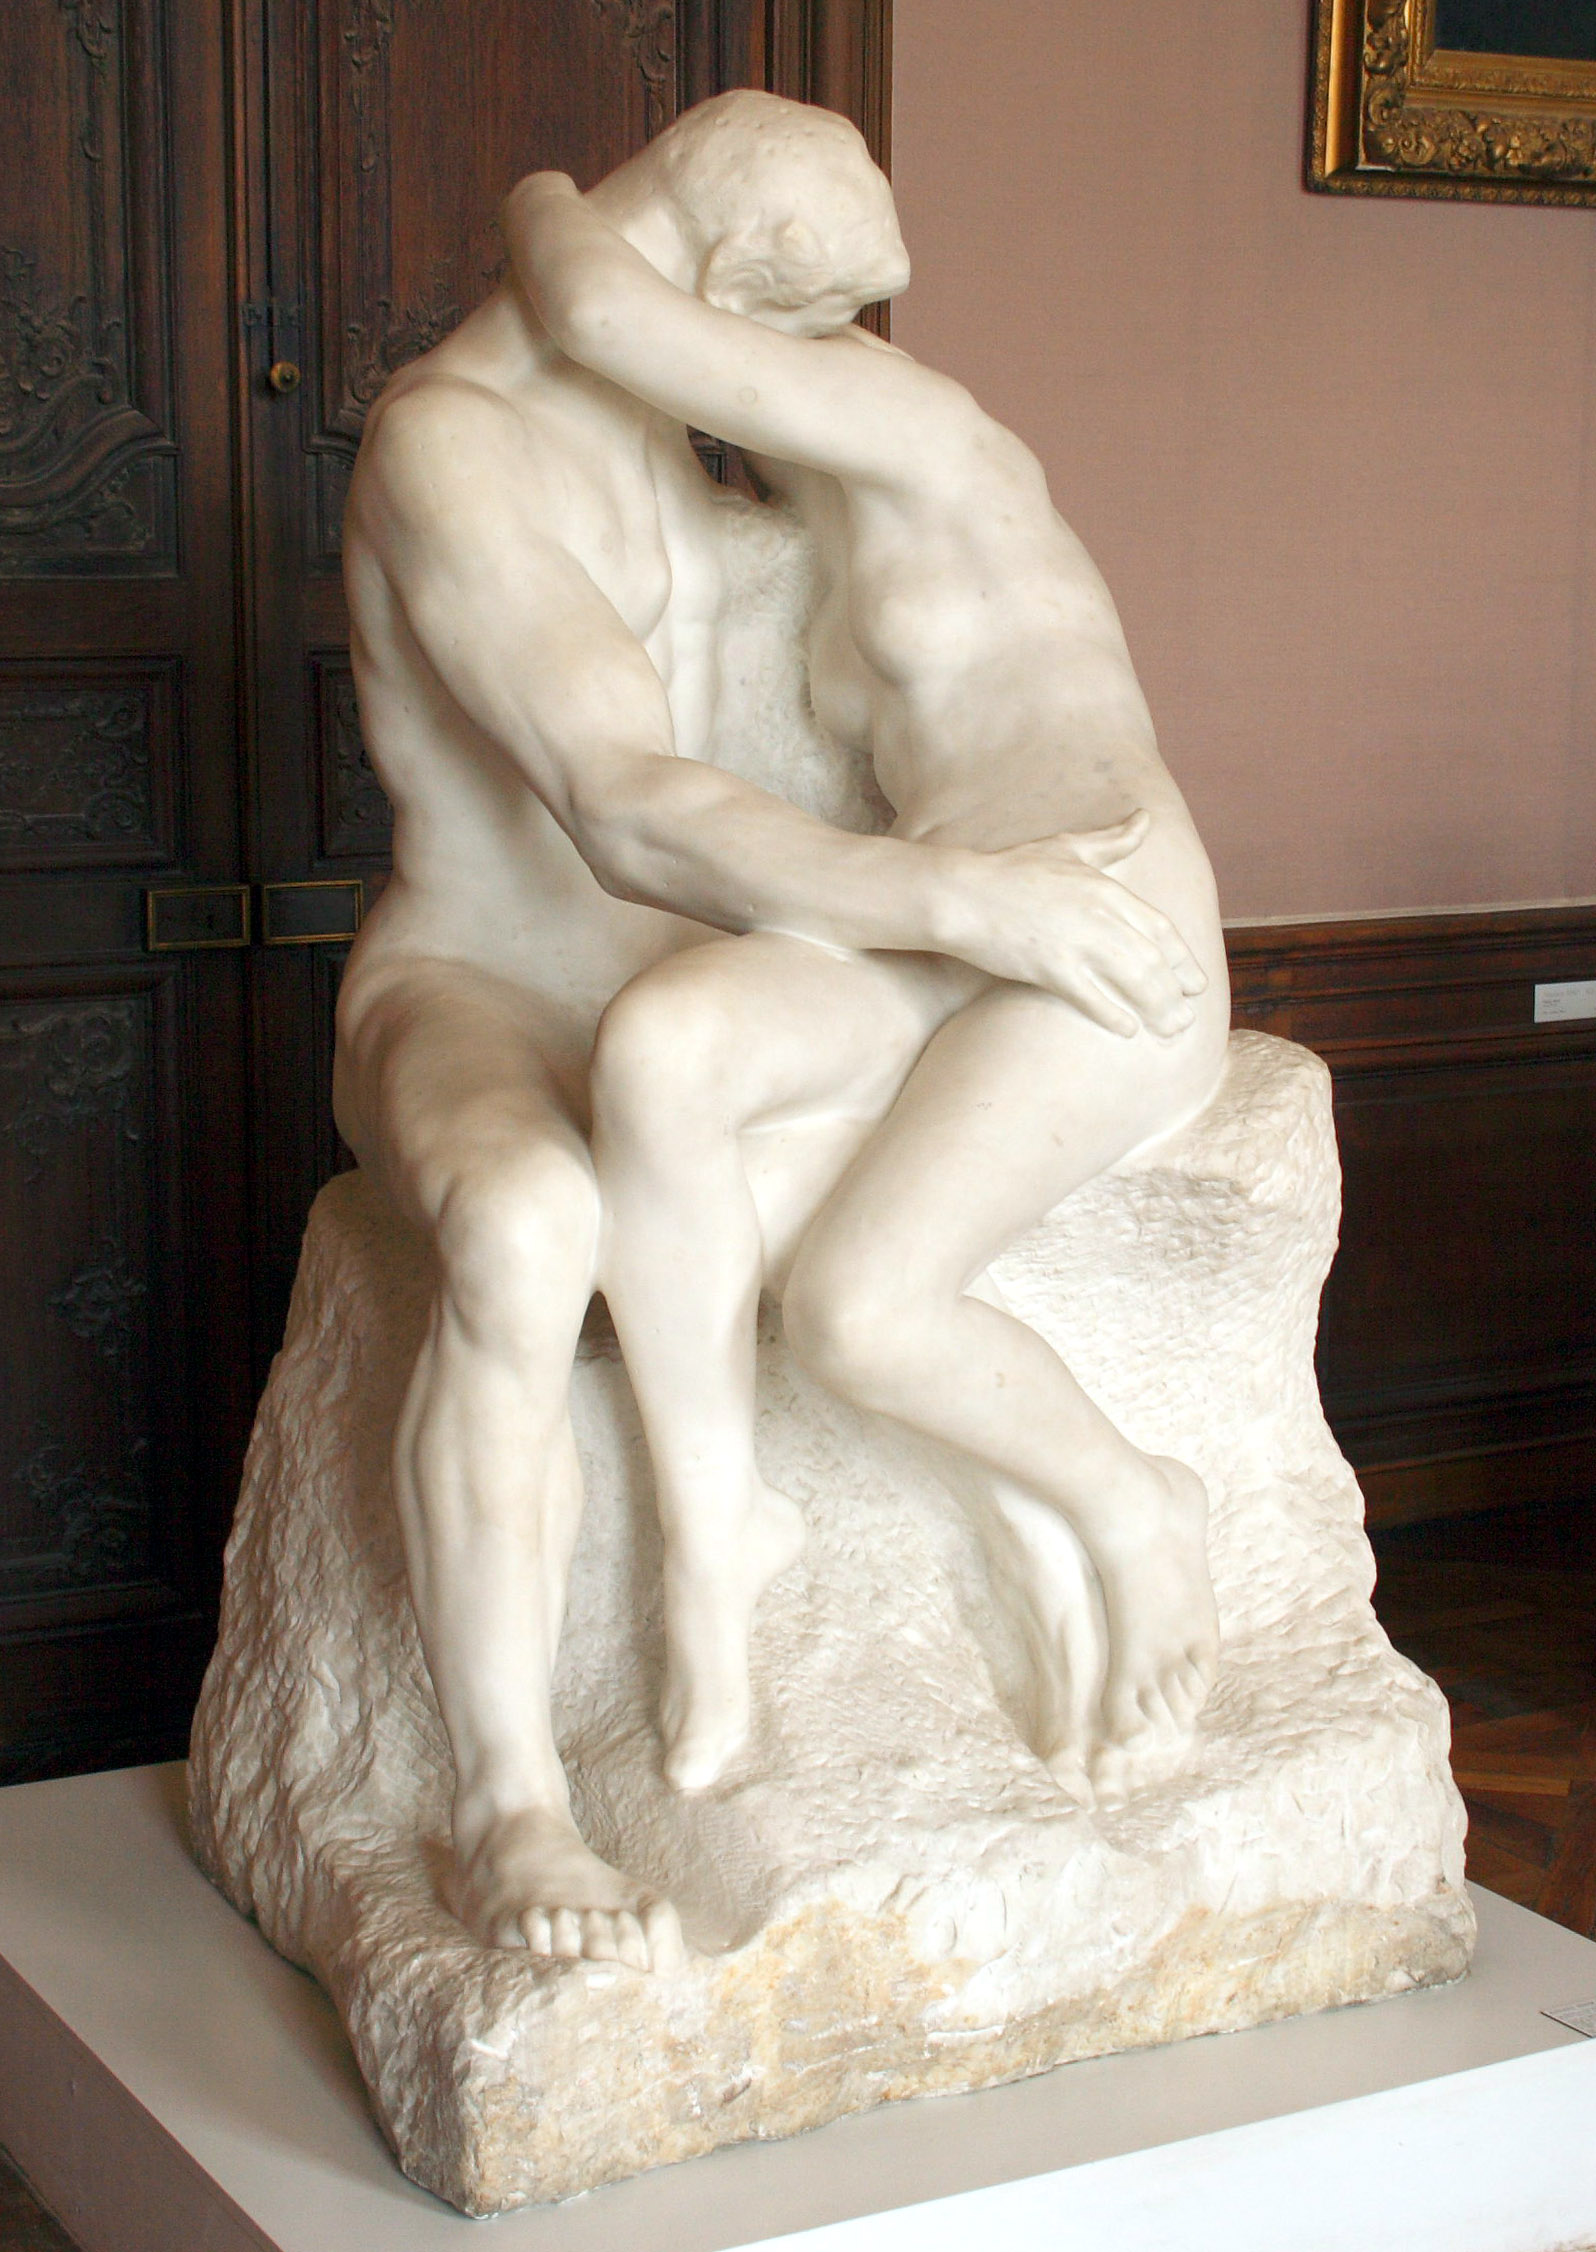 The Kiss – Sculpture by Francois Auguste Rodin